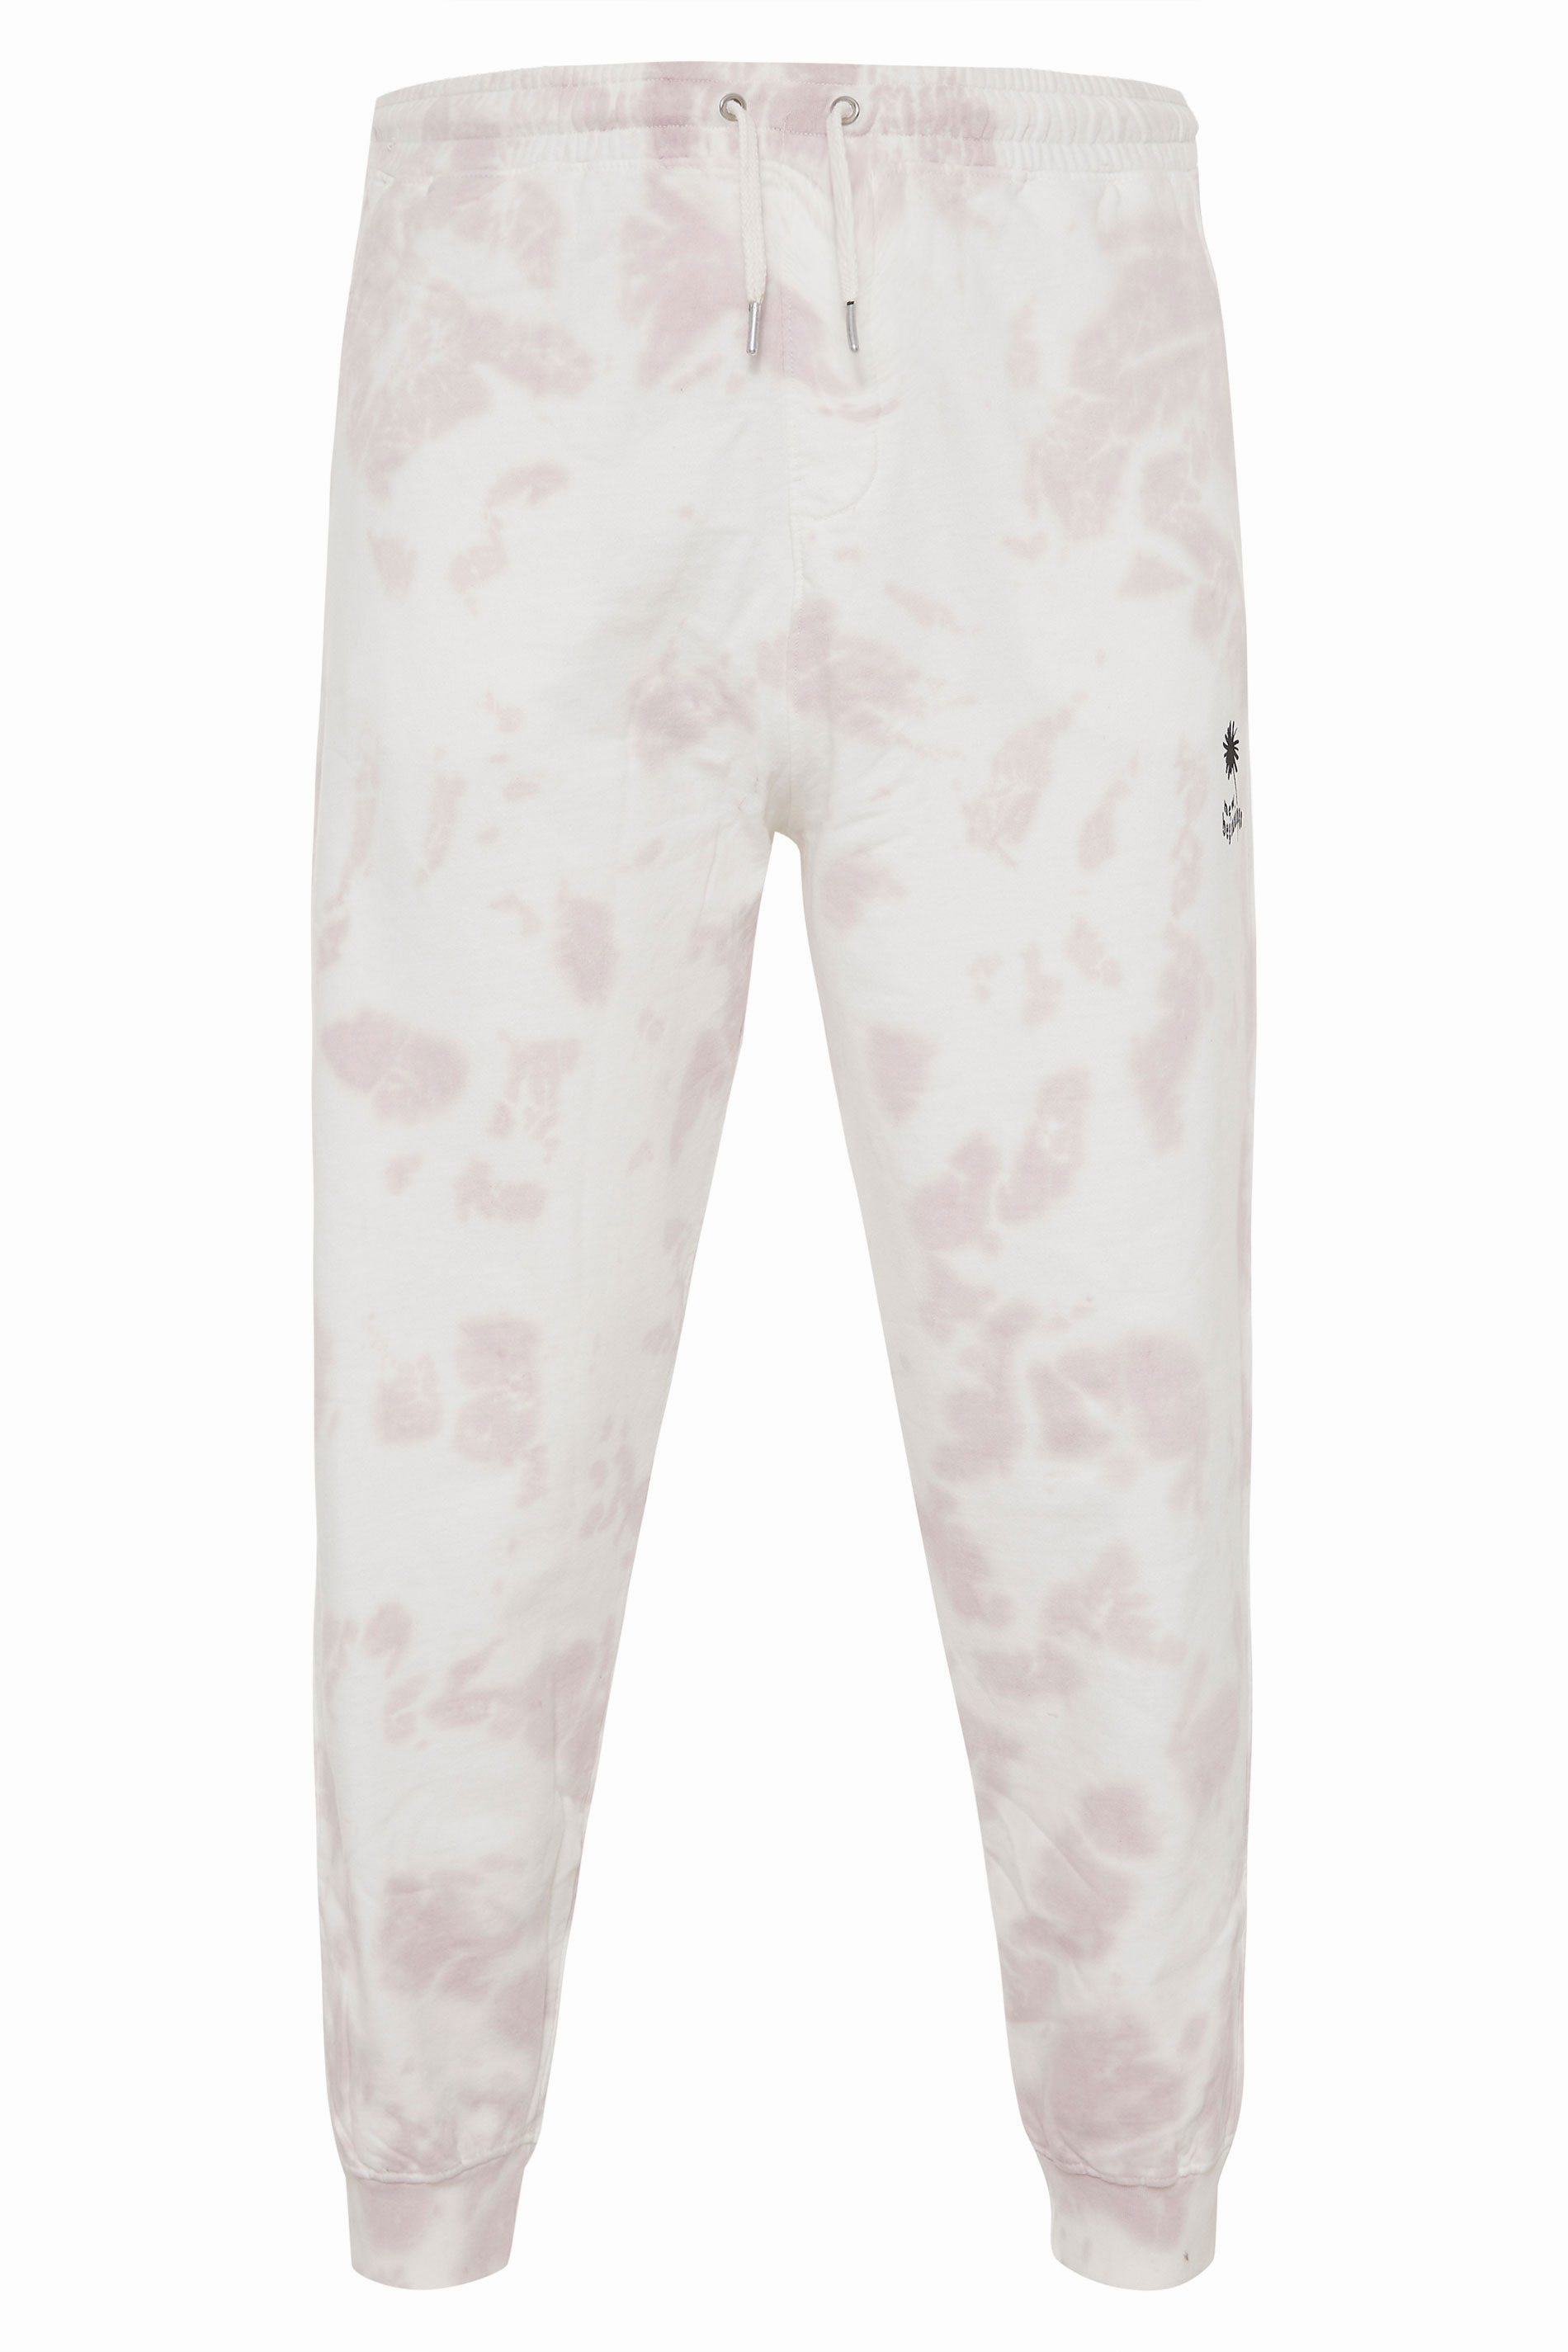 ANOTHER INFLUENCE White Tie Dye Joggers_F.jpg